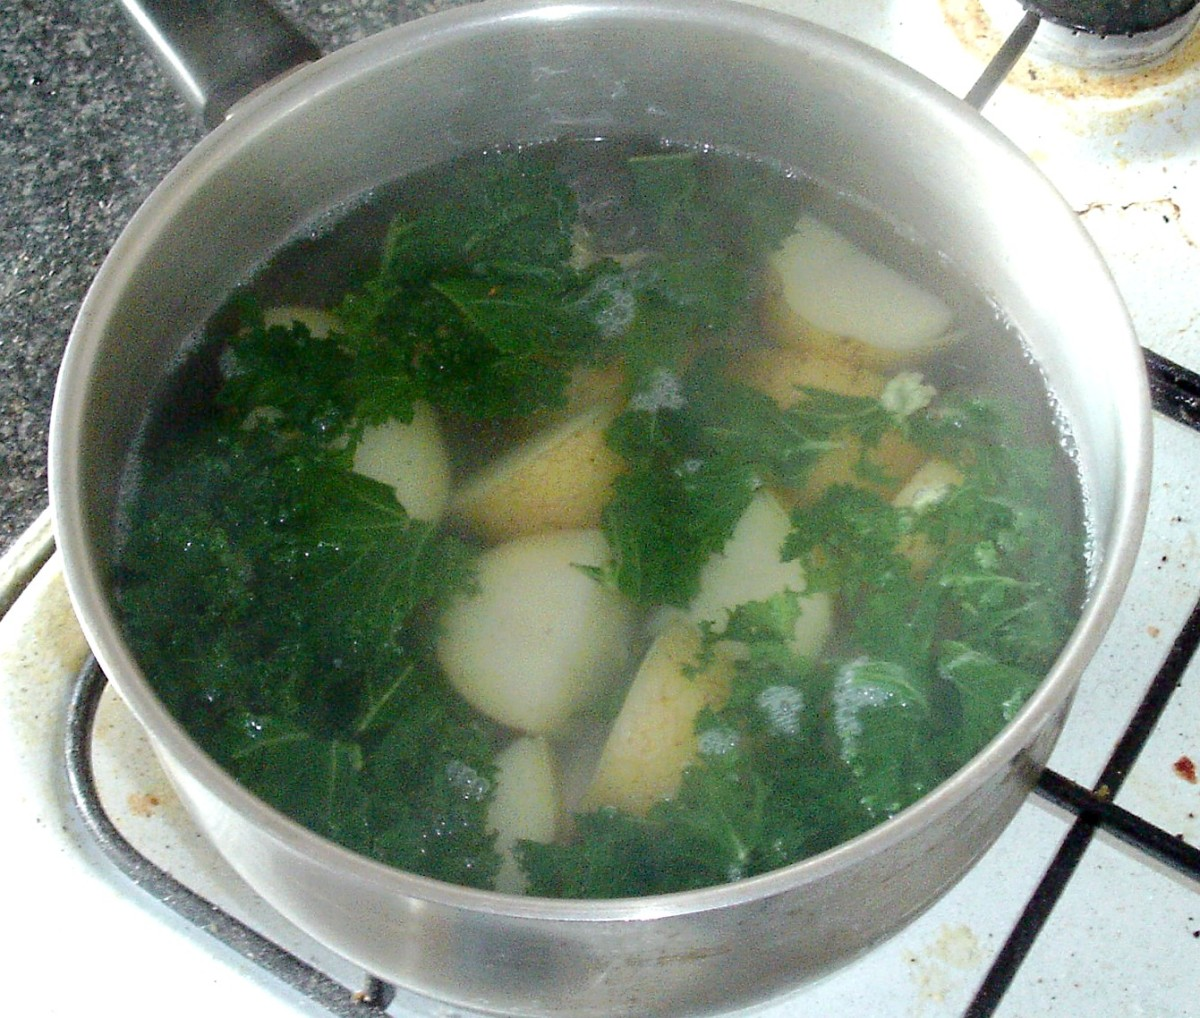 Potatoes and kale are simmered in boiling salted water